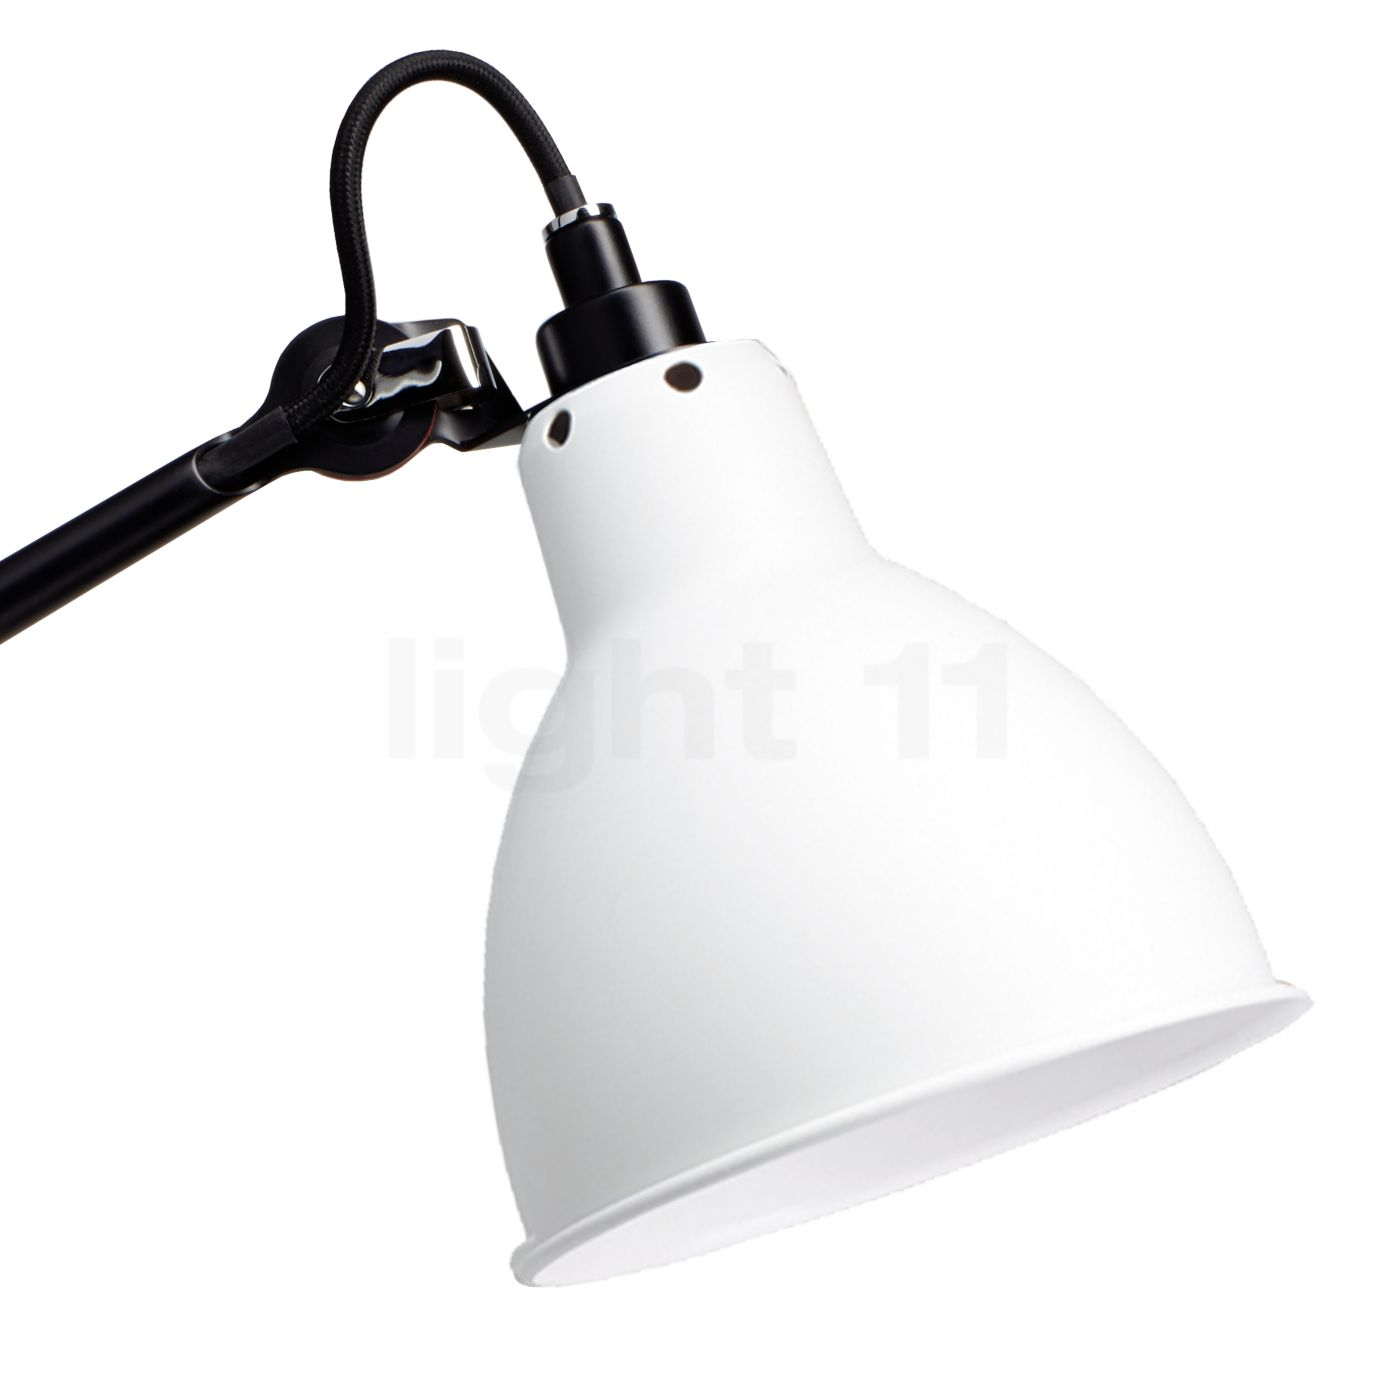 nickel satin clamp light lighting purposes for lamps with used display finish can be led